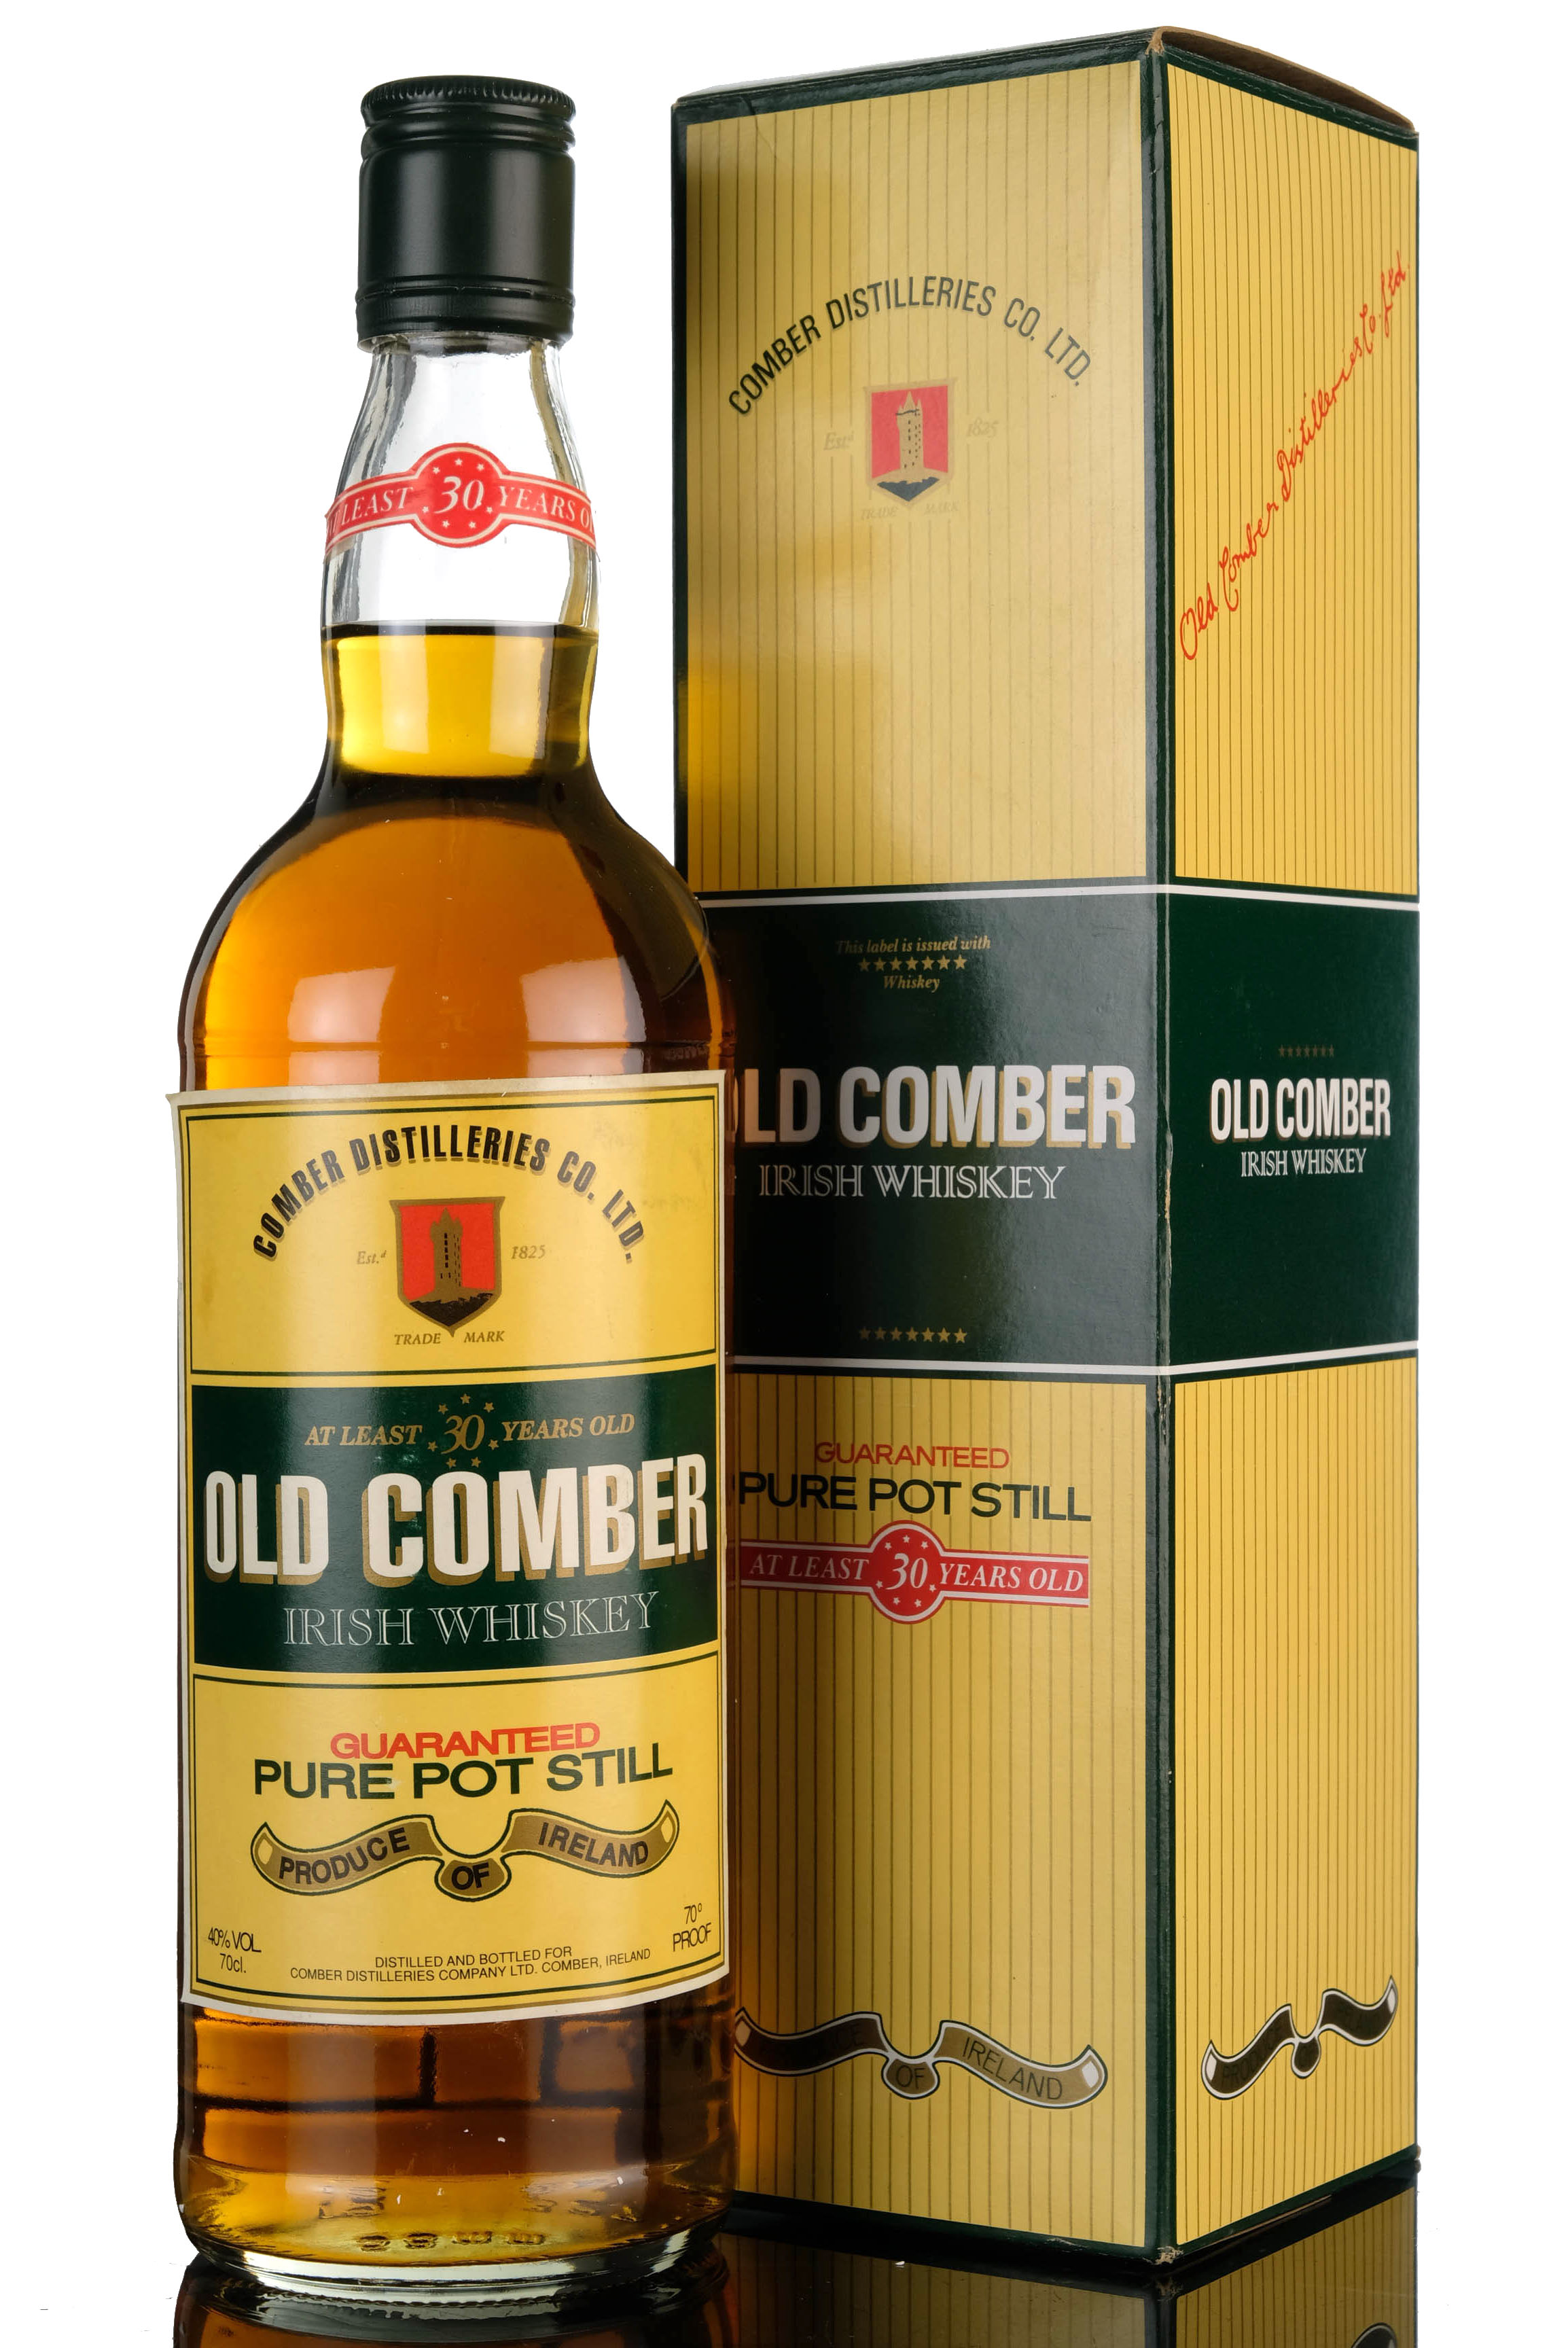 old comber 30 year old - irish whiskey